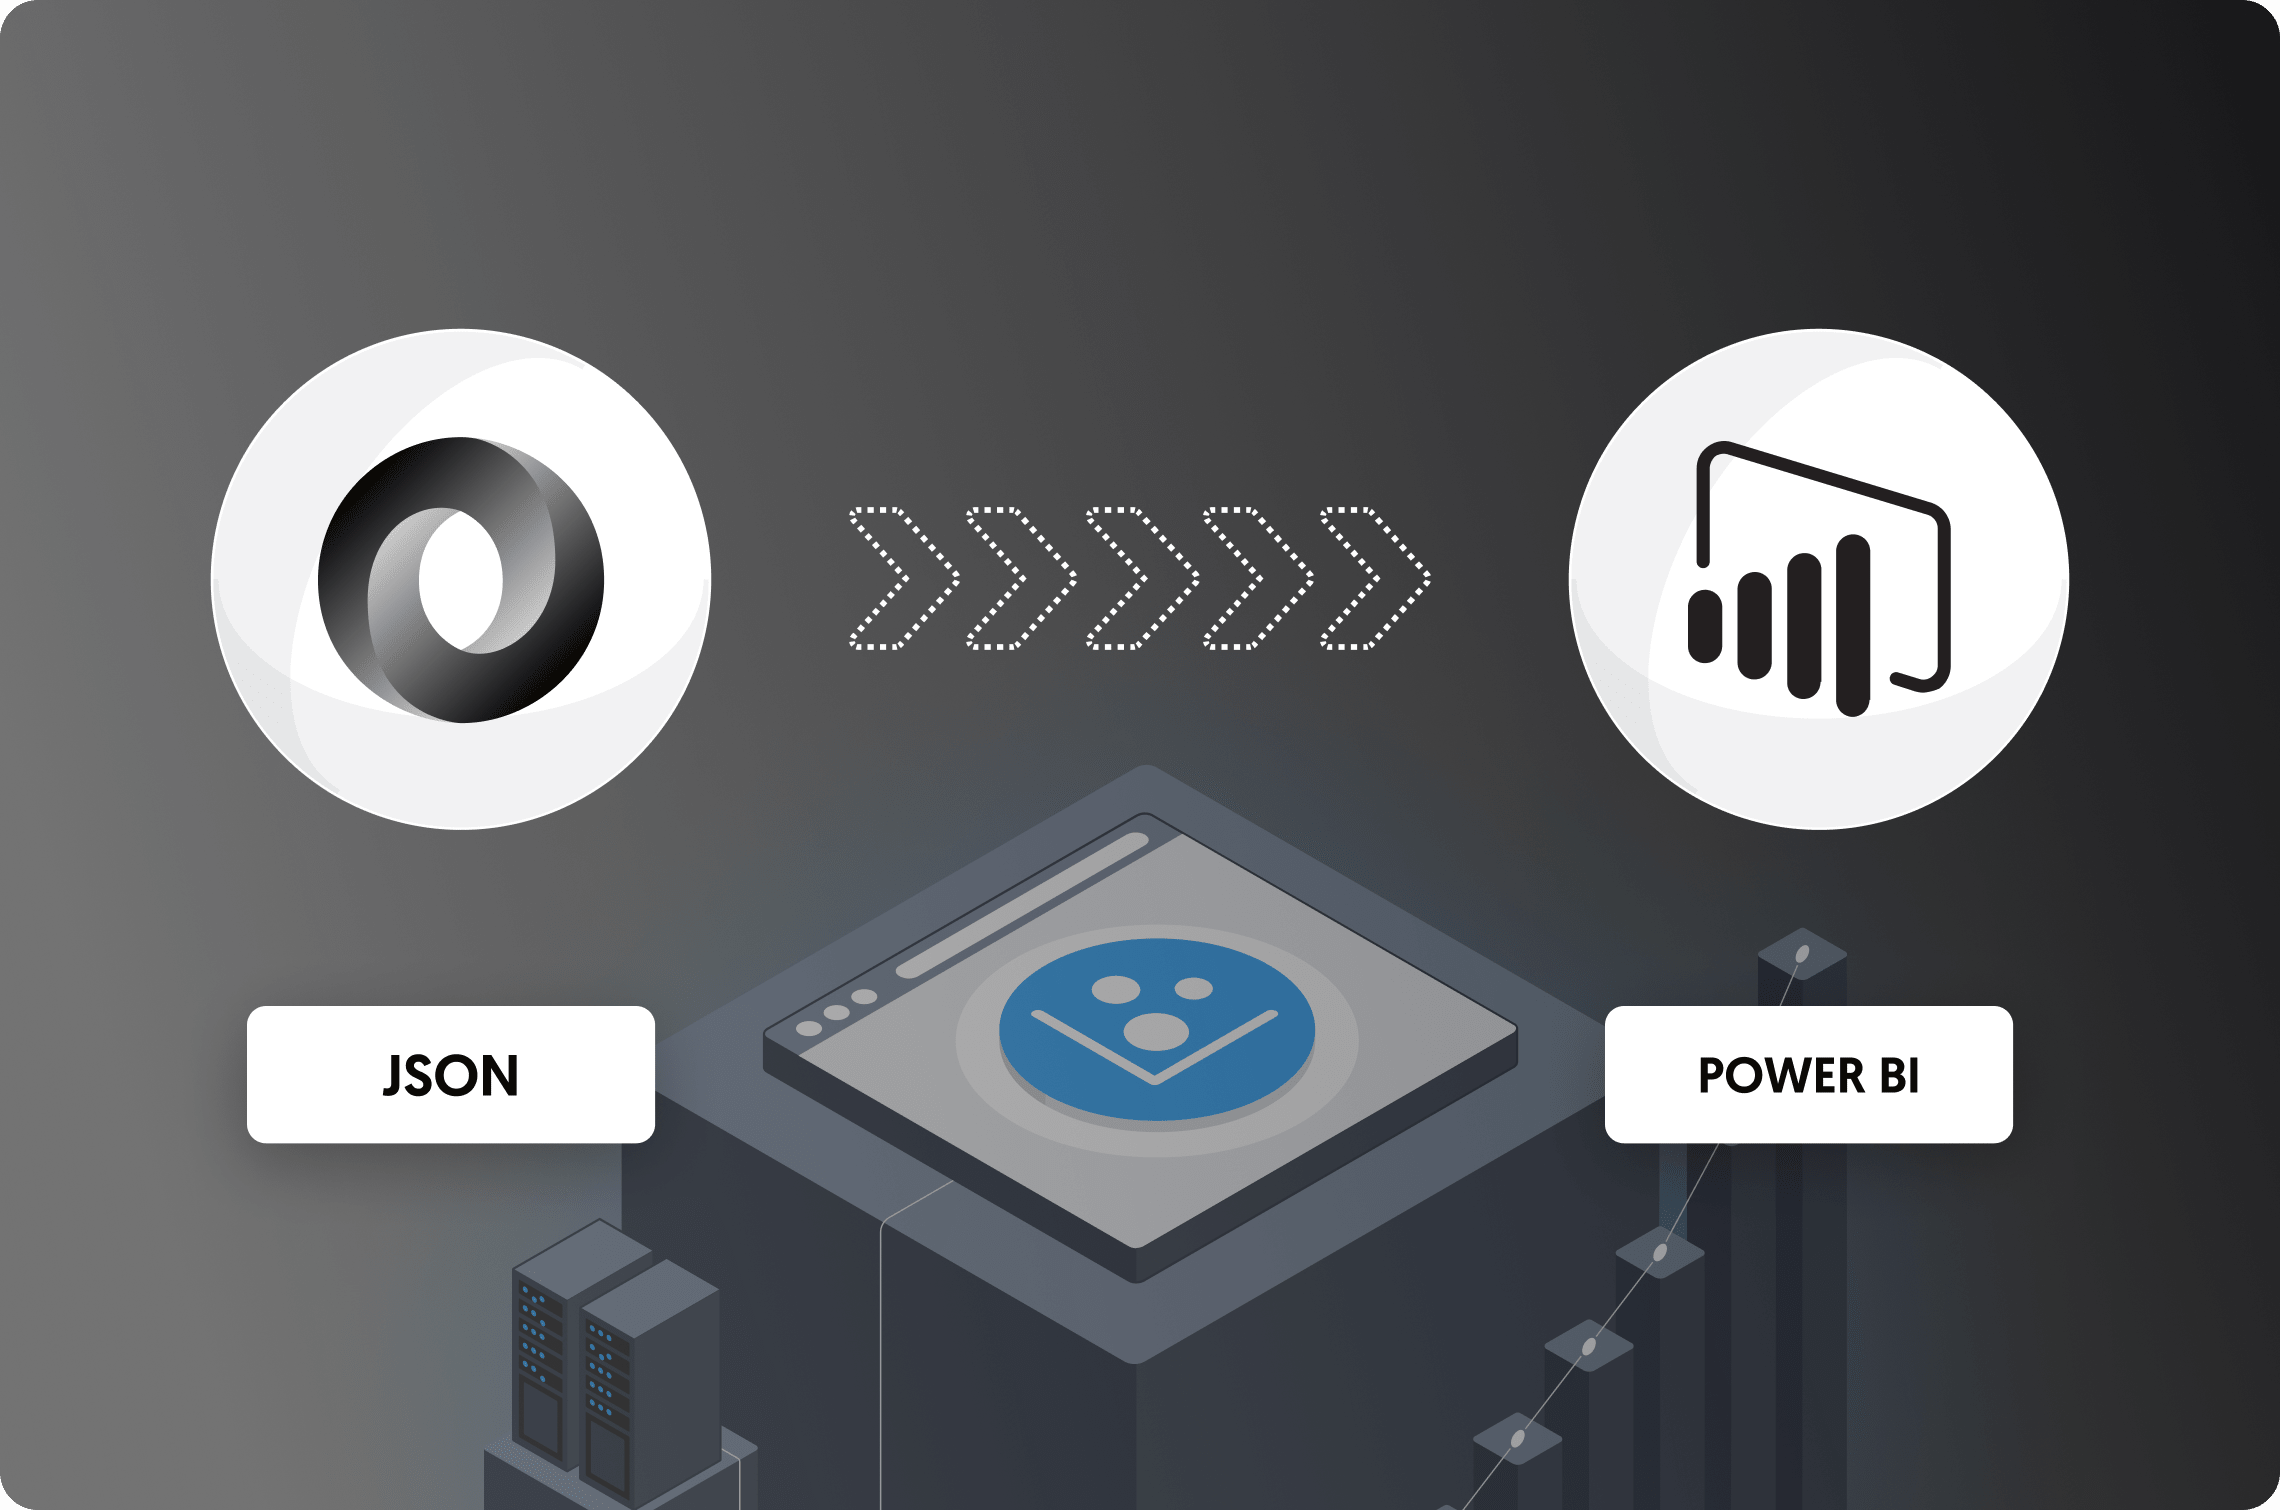 How to connect JSON with Power BI: Direct vs. Dataddo